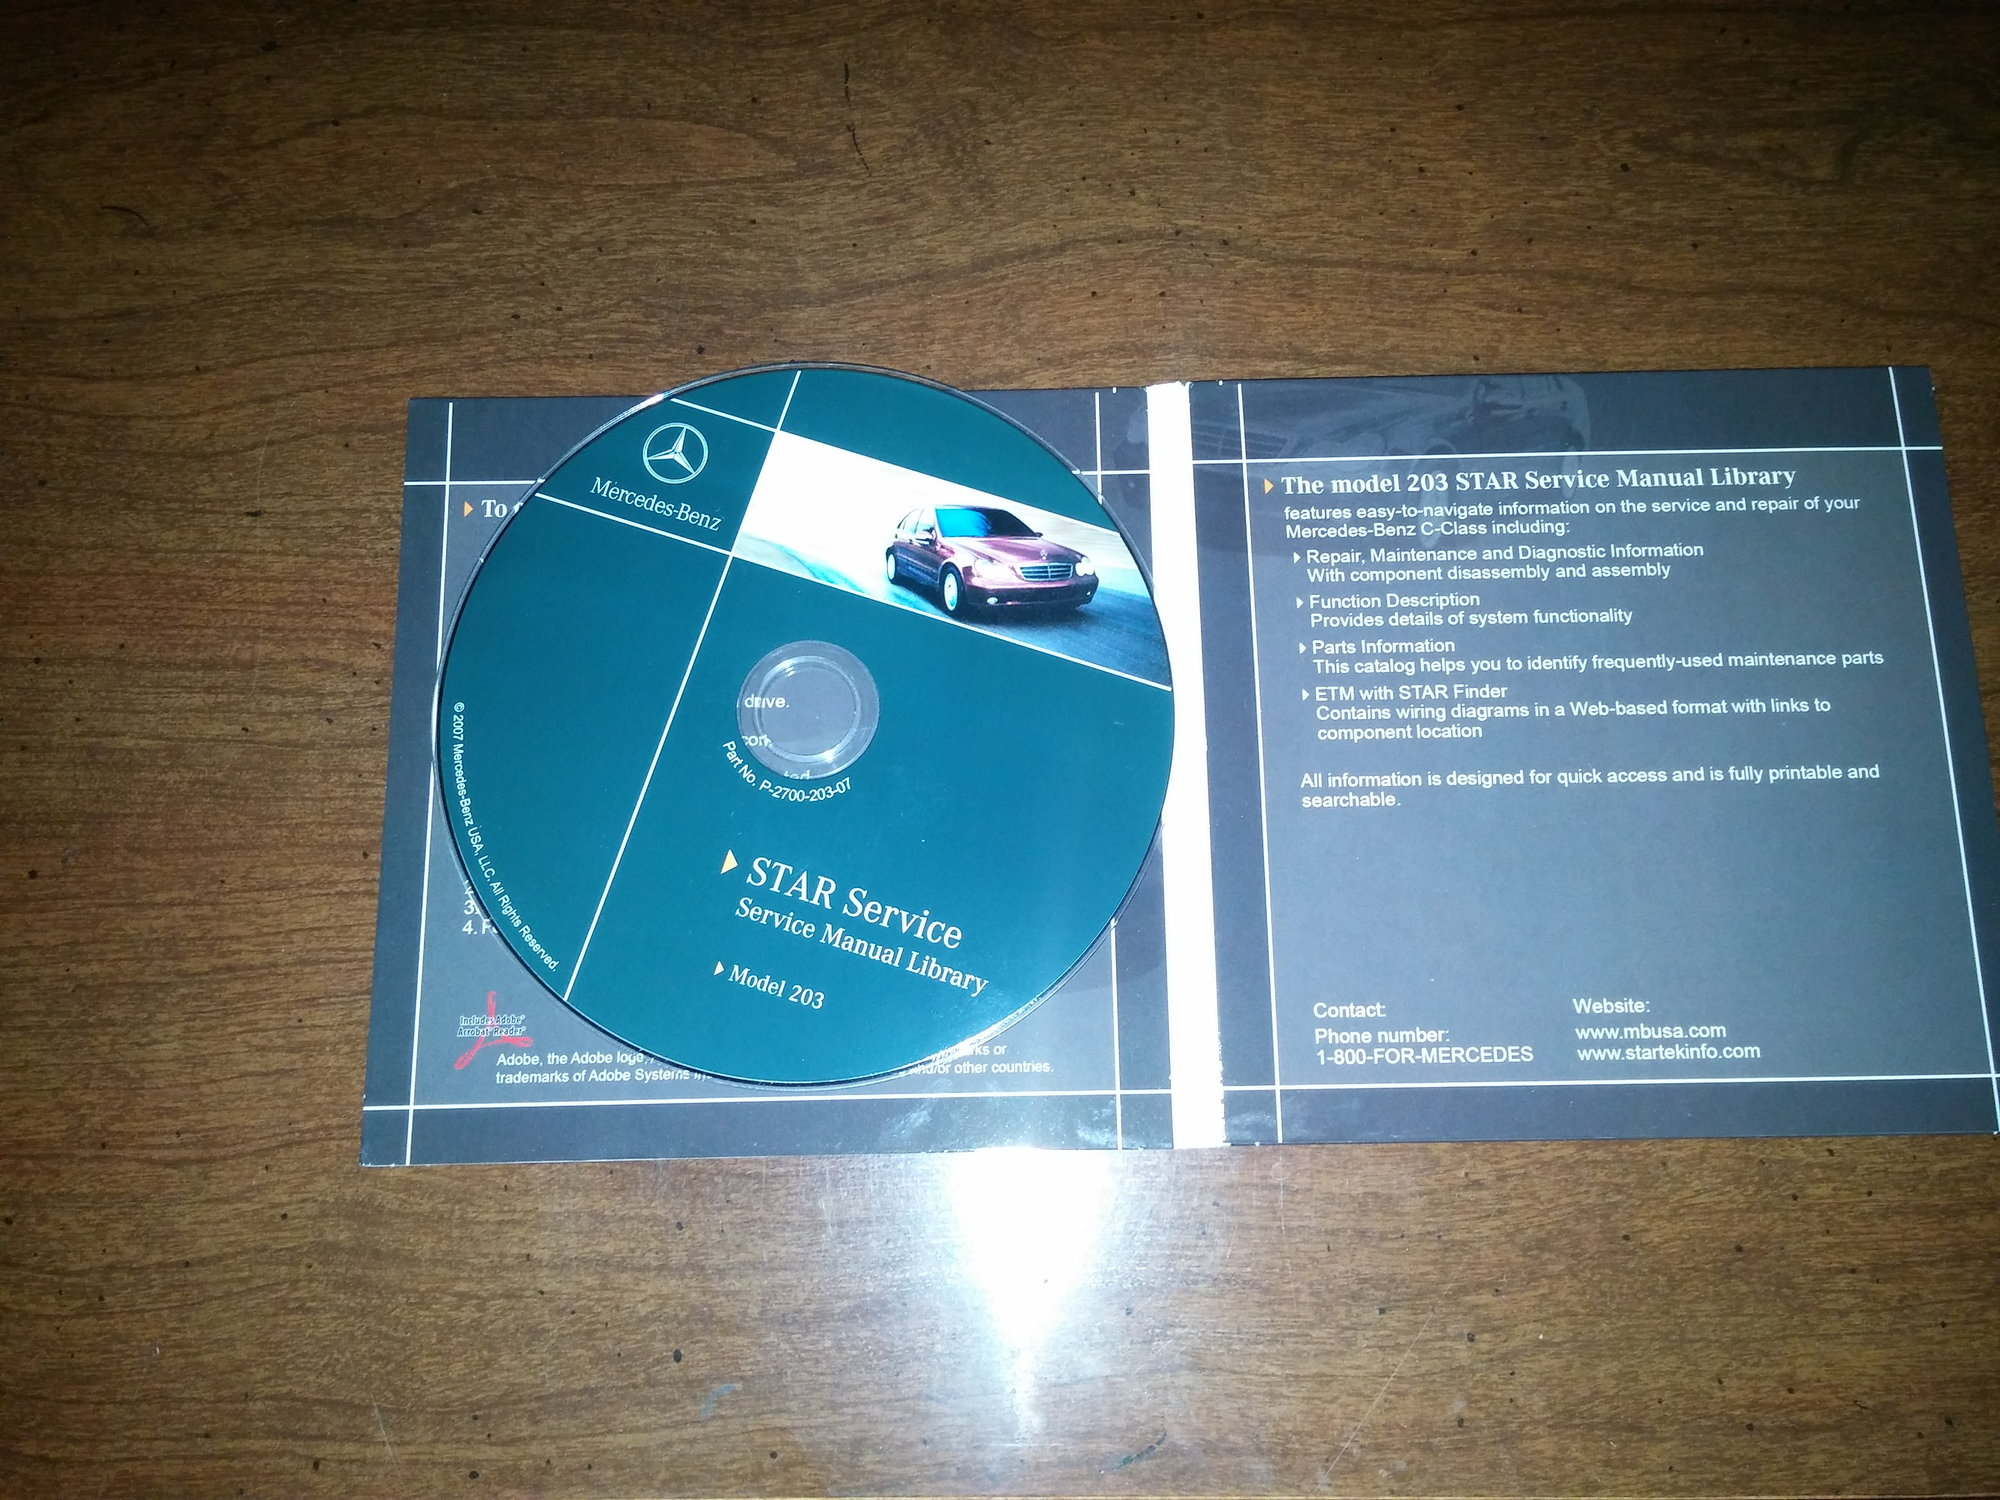 ... service manual DVD for sale. Asking 60 obo shipped